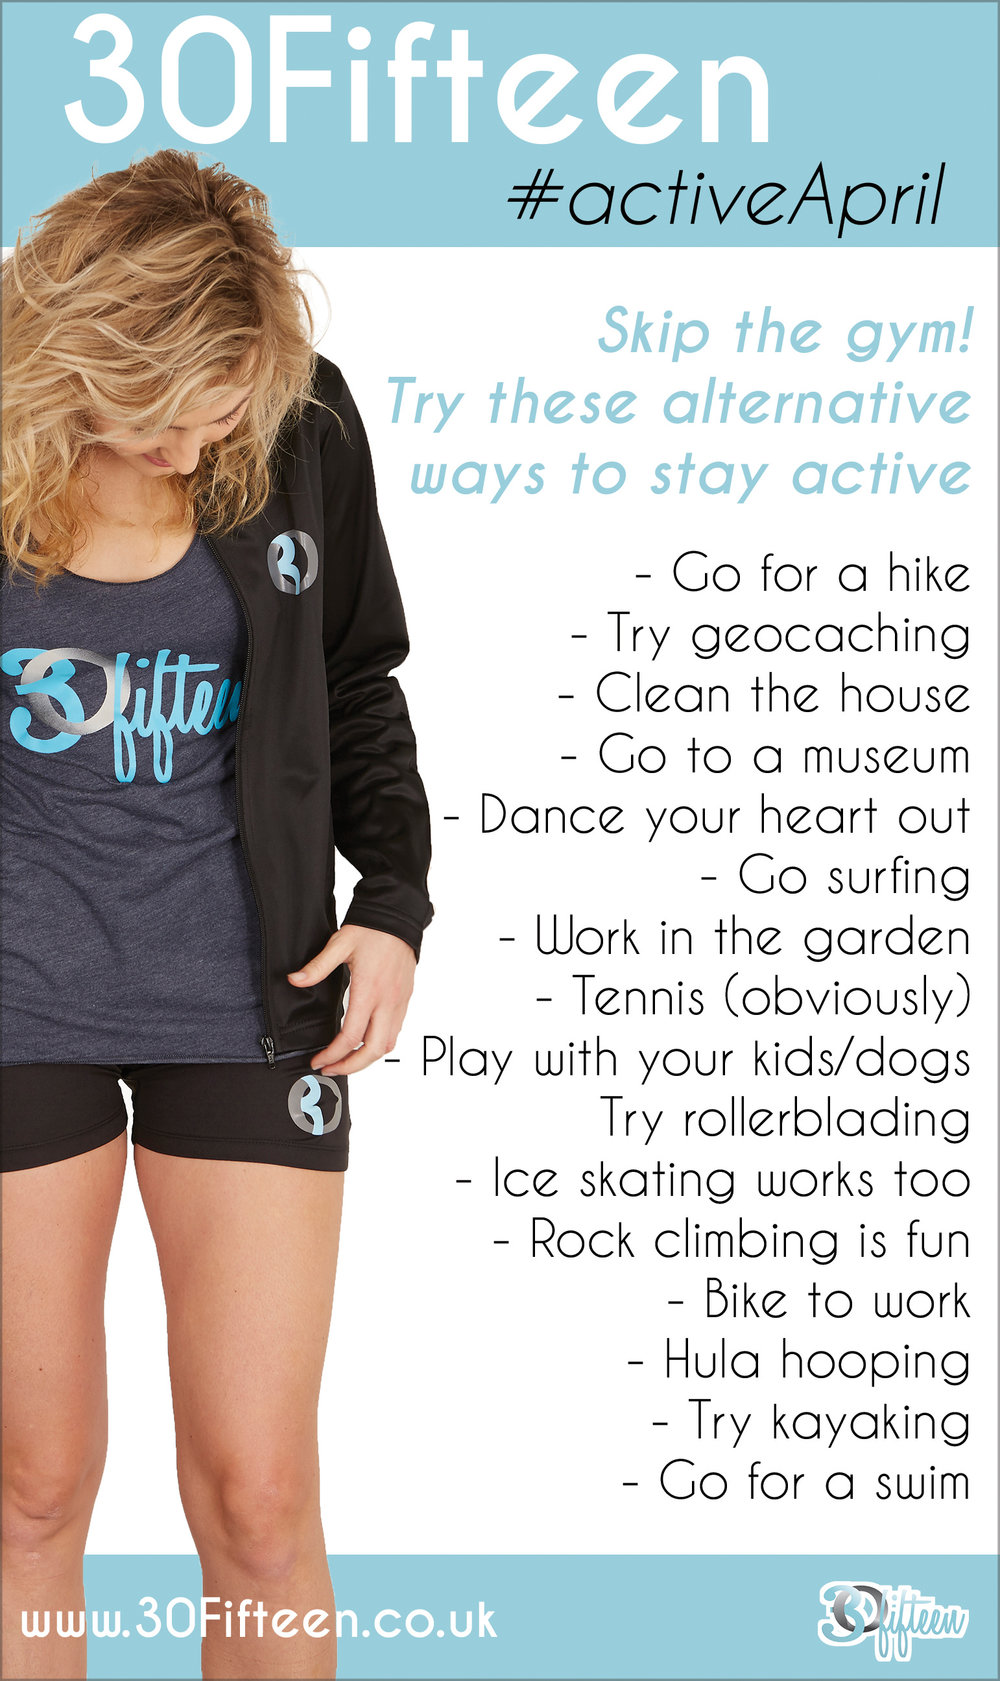 30Fifteen Active April - Alternative Workouts - Skip the Gym